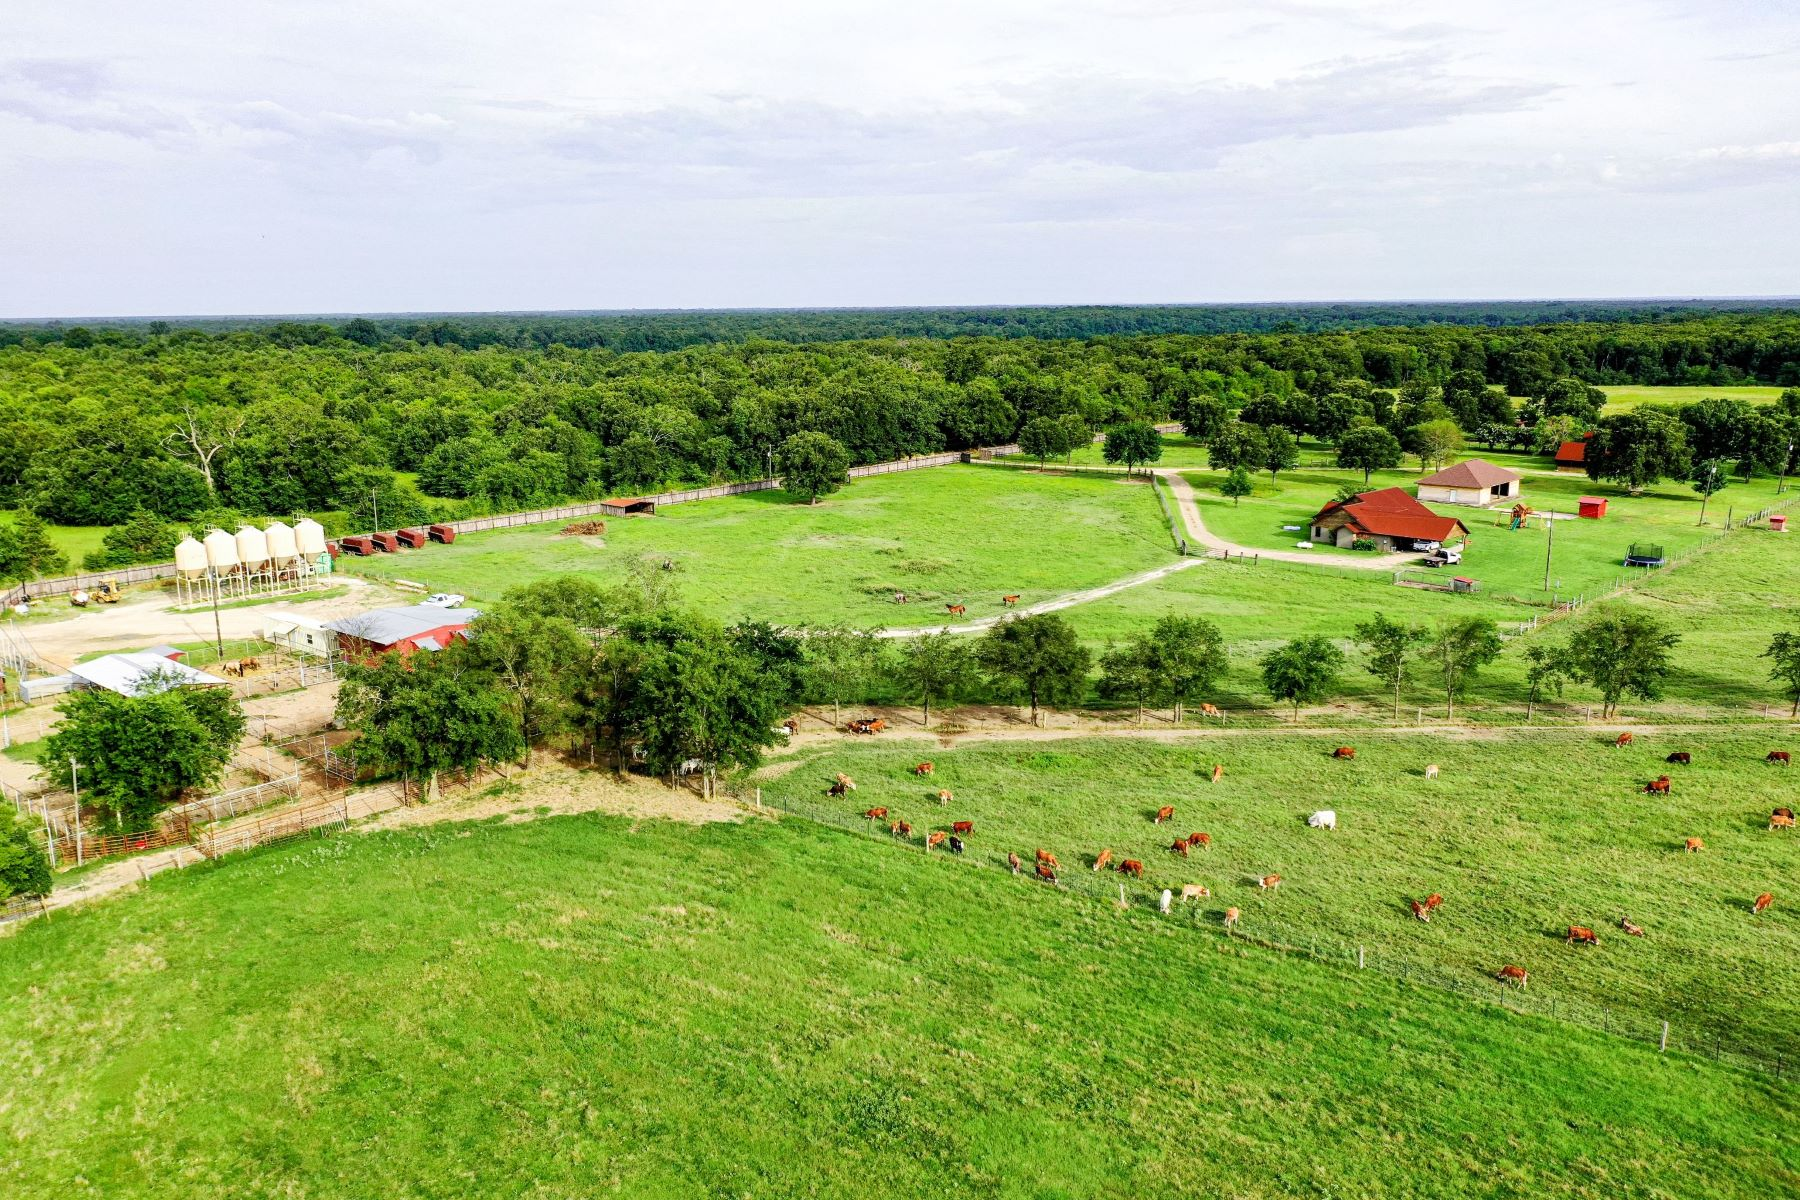 Farm / Ranch / Plantation for Sale at Sulpher River Ranch 0001 FM 44 Avery, Texas 75554 United States